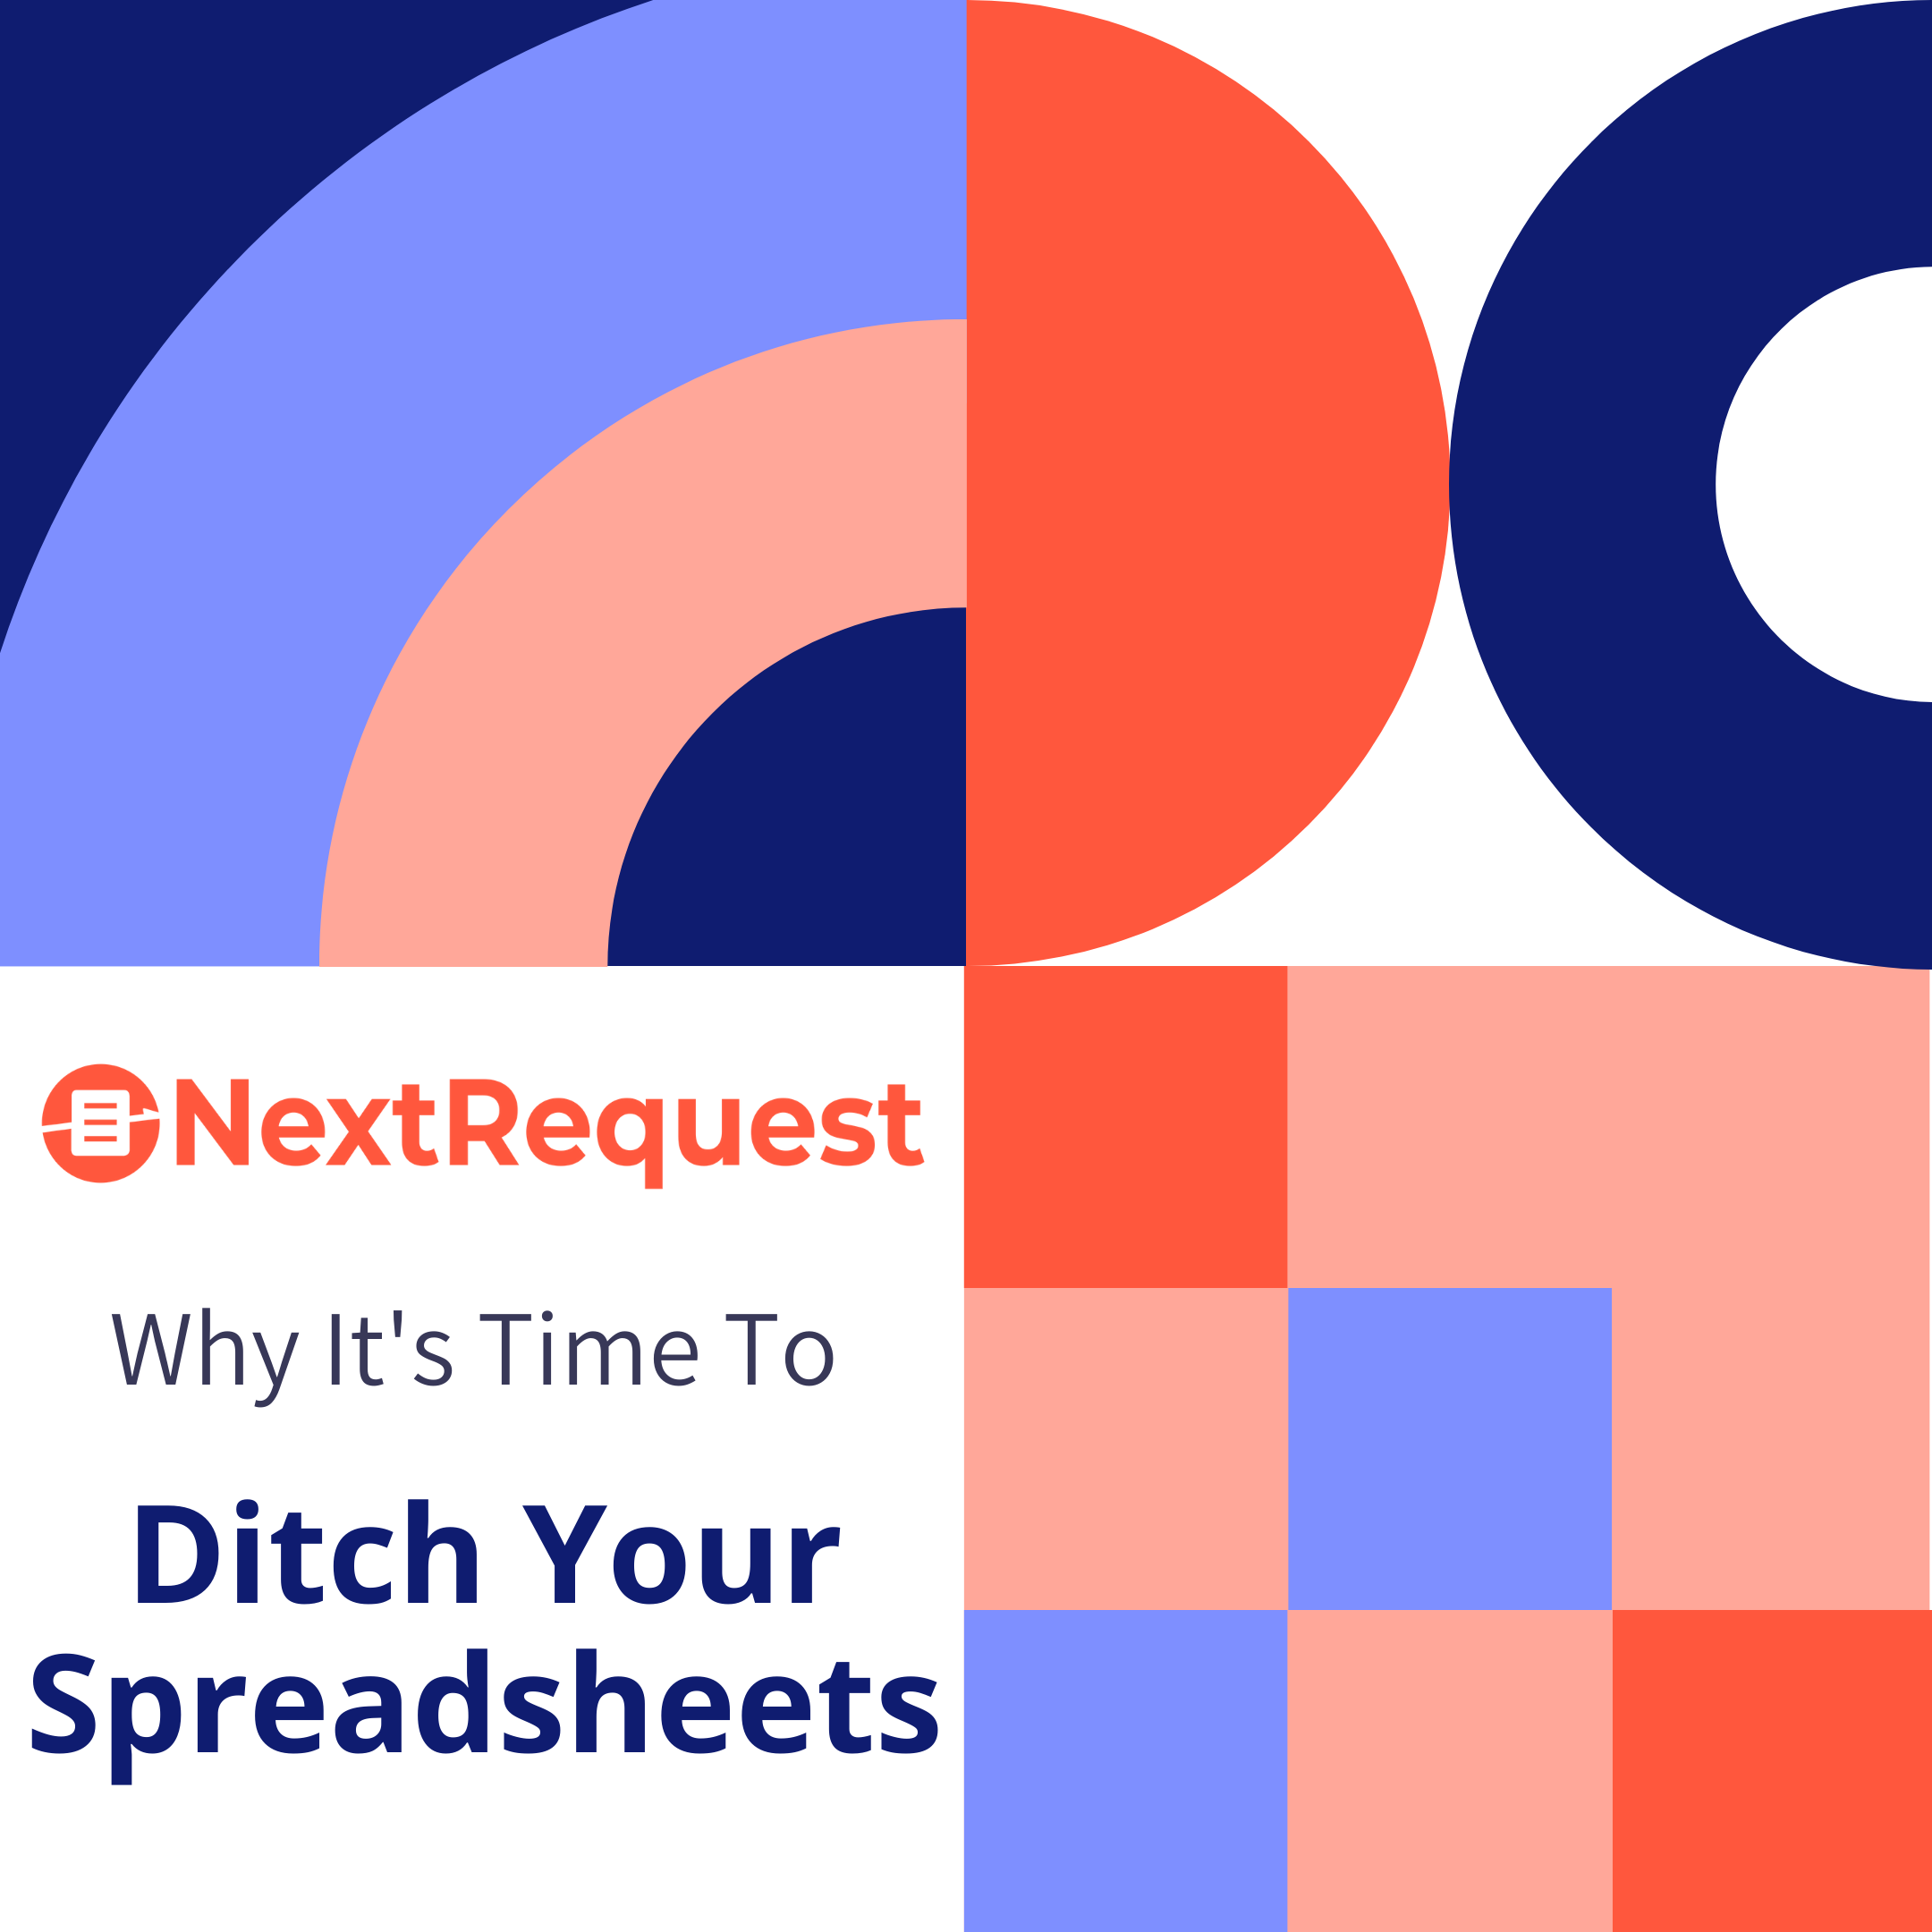 Why It's Time to Ditch Your Spreadsheets